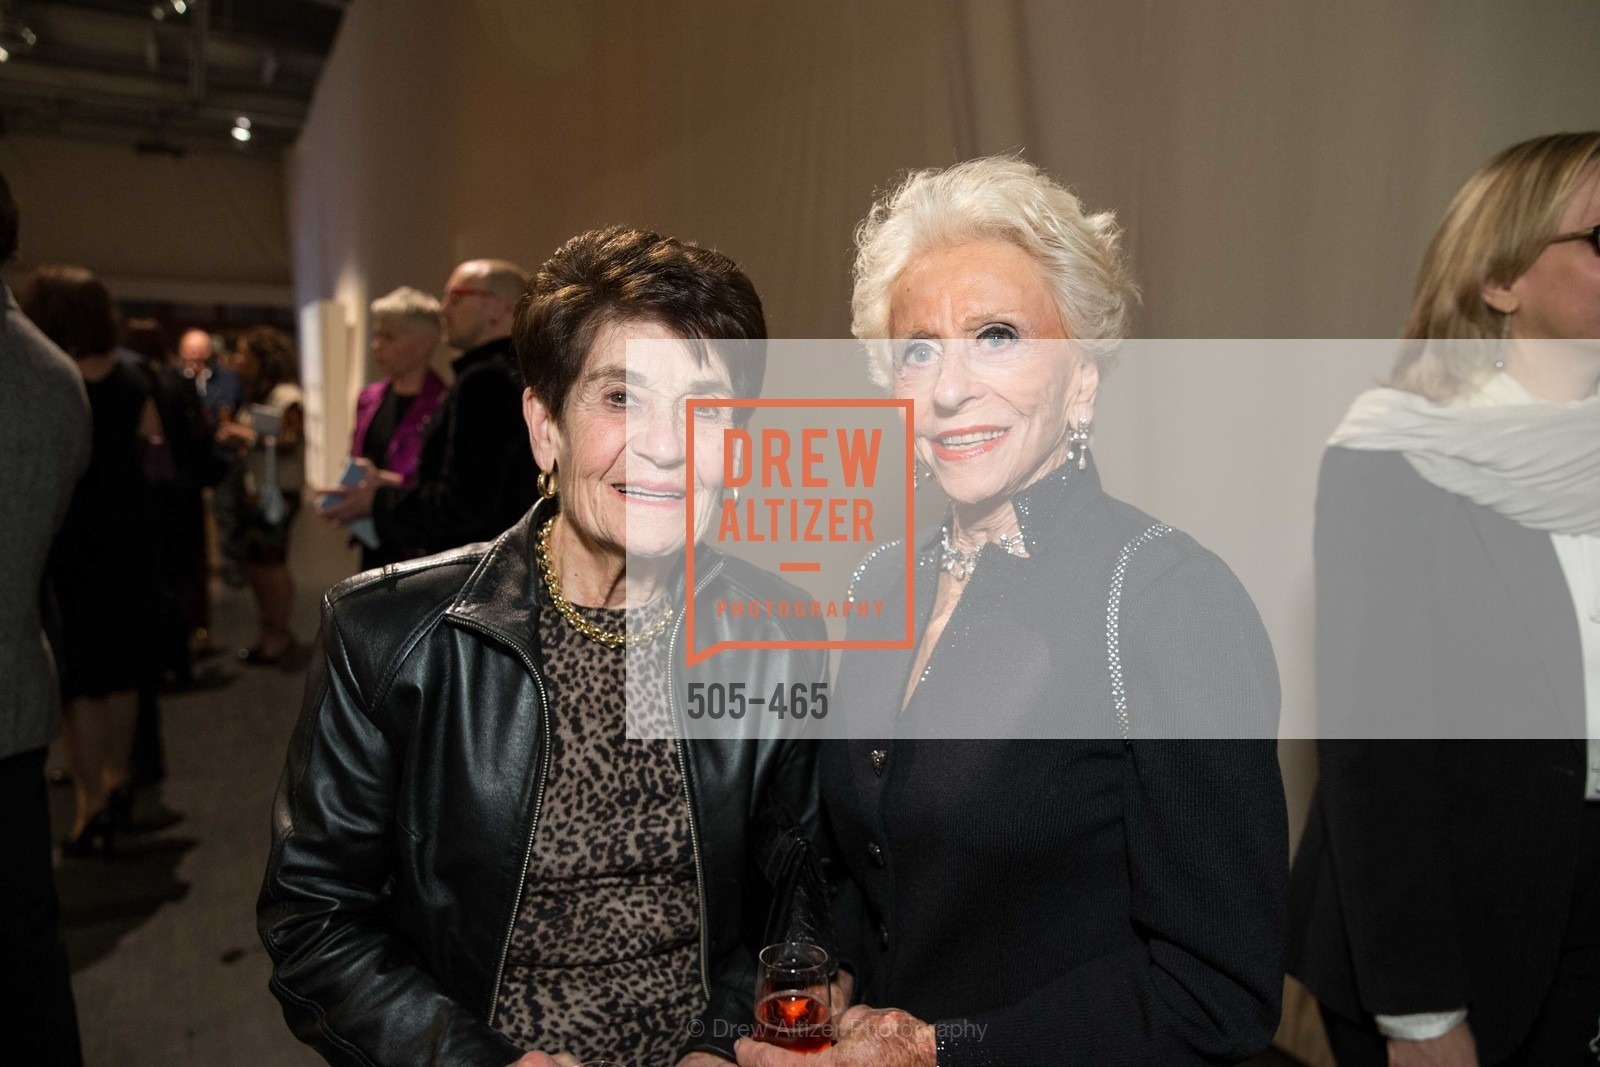 Frannie Fleishhacker, Bobbie McChristy, FOG Design + Art Preview Gala, US. US, January 16th, 2014,Drew Altizer, Drew Altizer Photography, full-service agency, private events, San Francisco photographer, photographer california